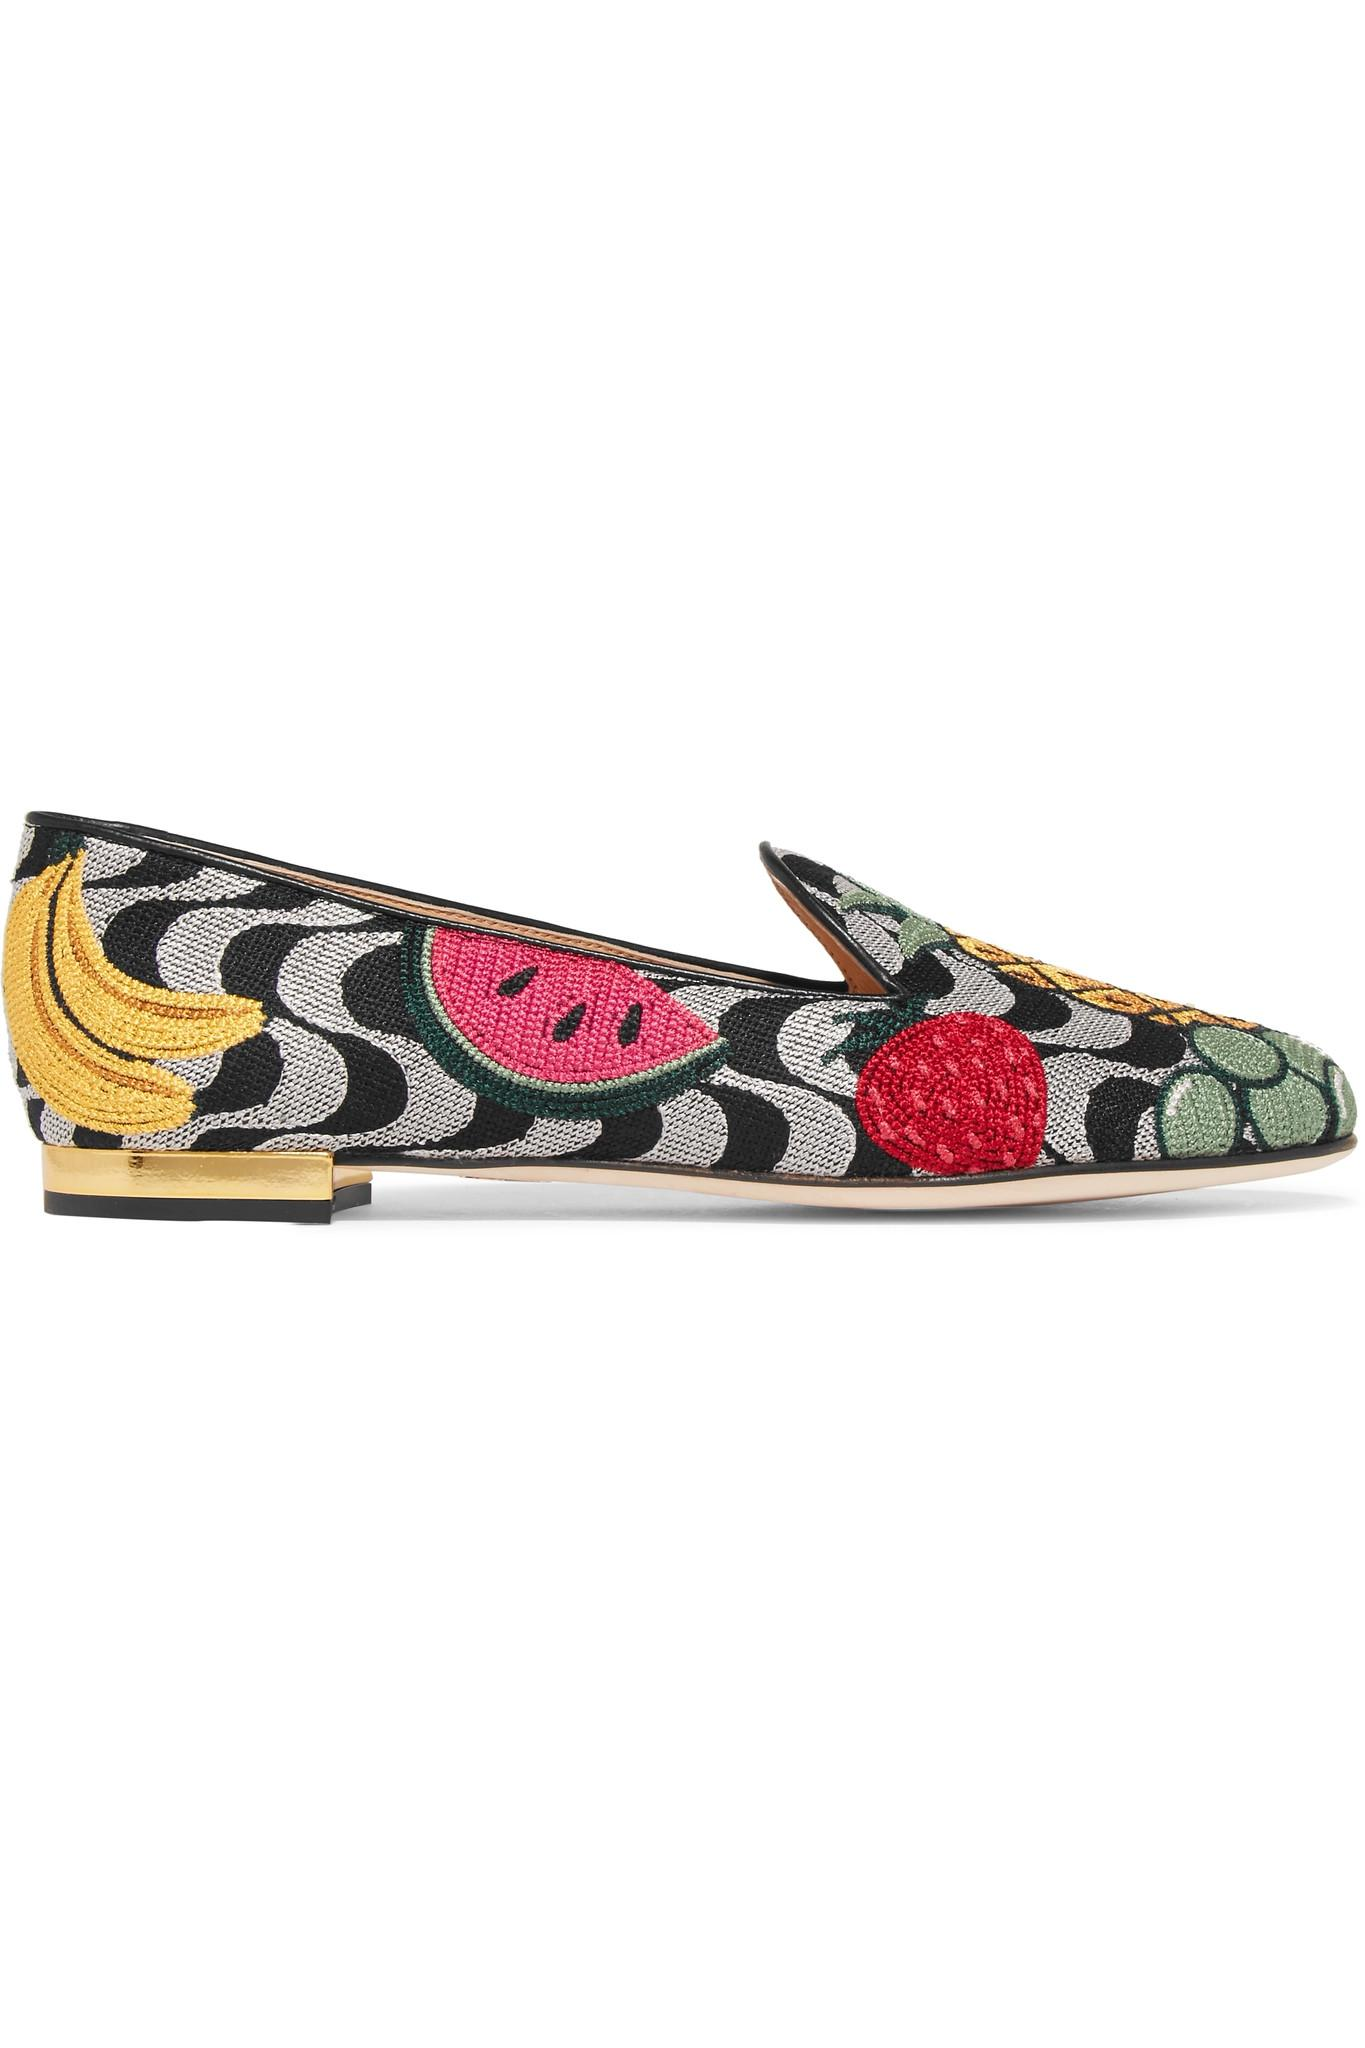 Fruit Salad Embroidered Canvas Slippers - Gray Charlotte Olympia 73qdpQG